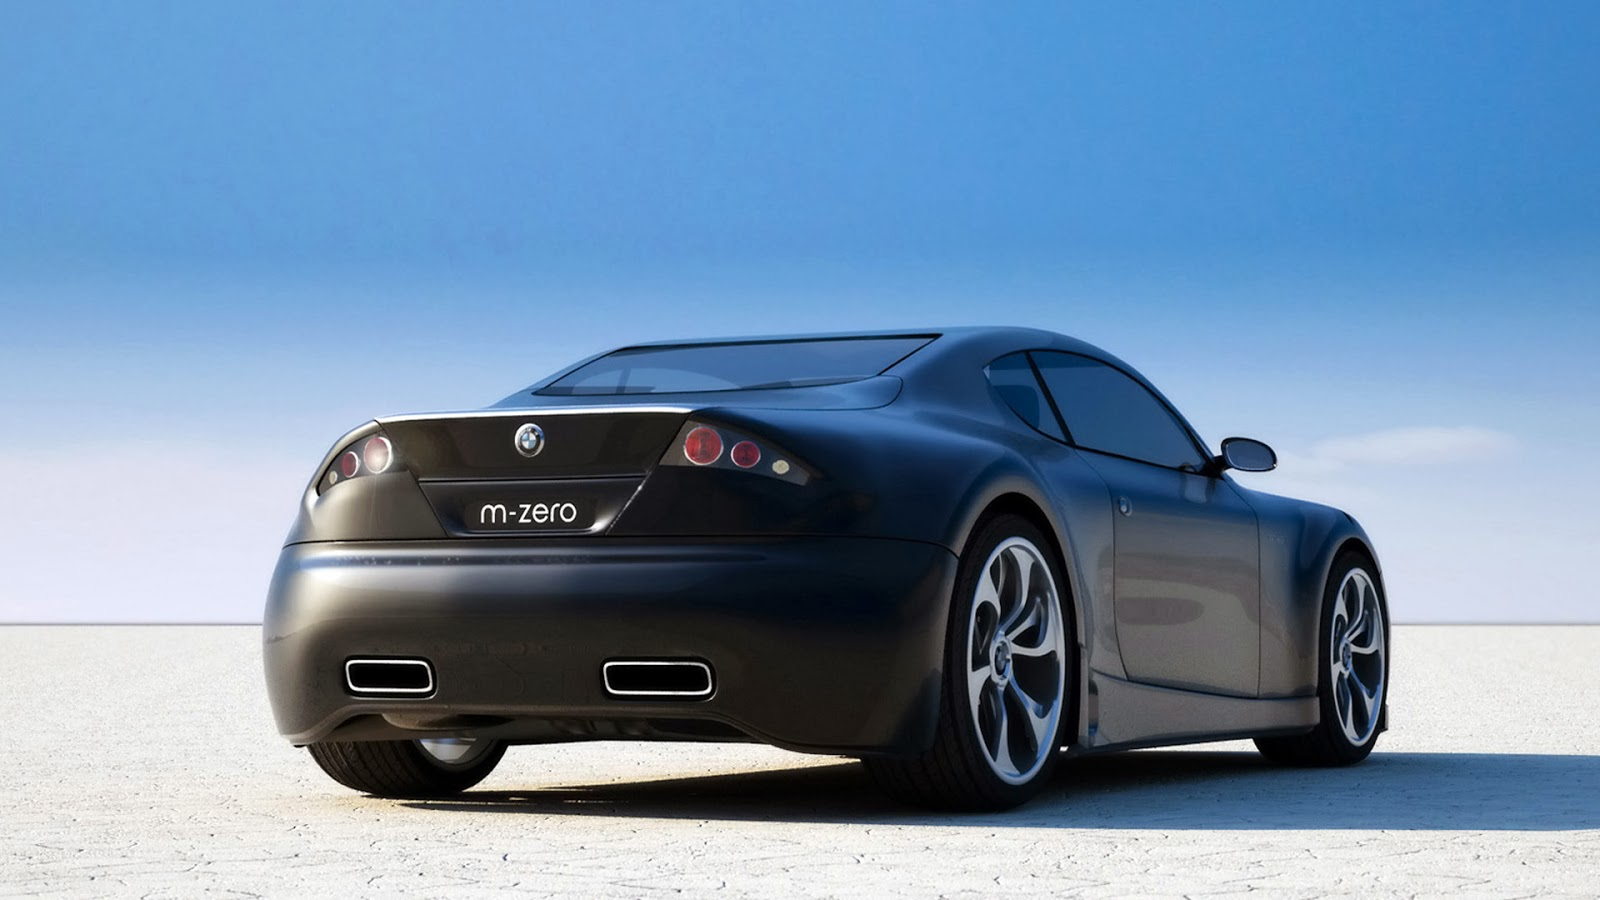 Title Hd Bmw Car Wallpapers 1080p Automotive Wallpapers Hd